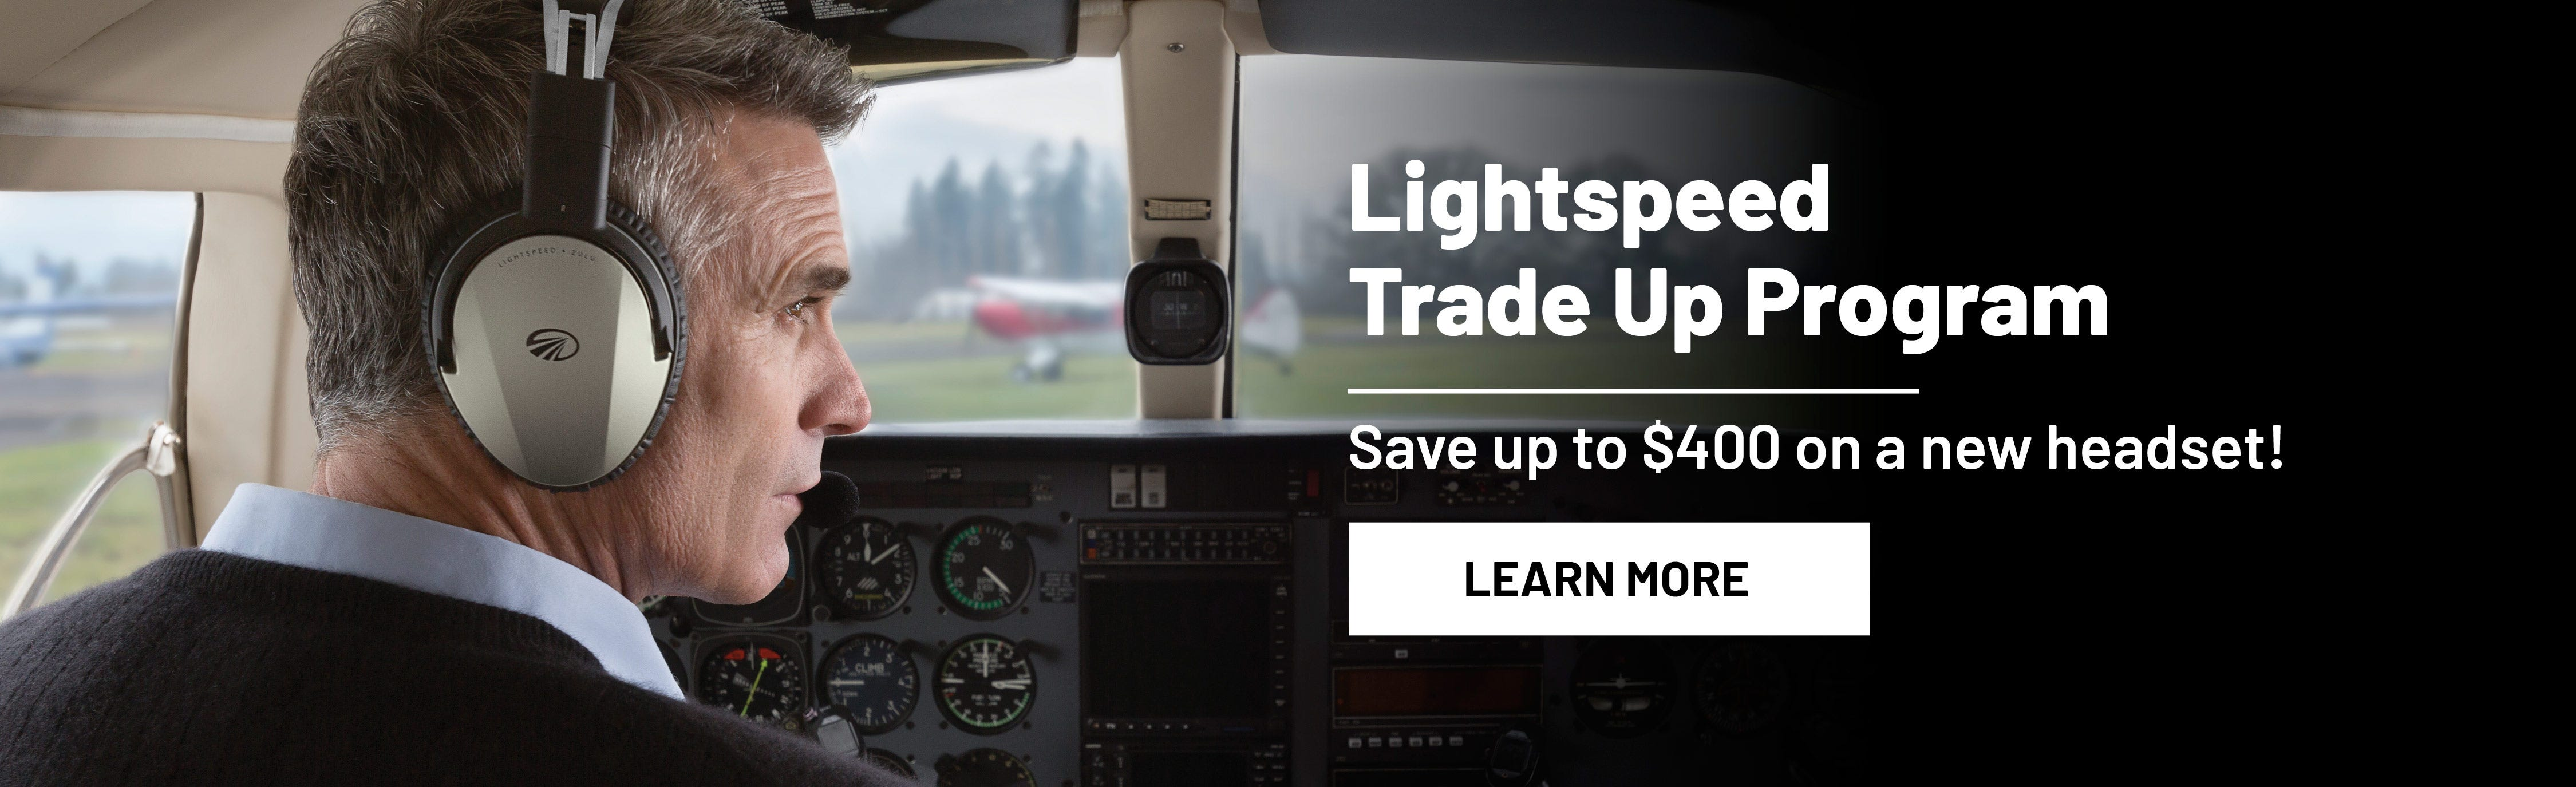 Lightspeed Trade-Up Program